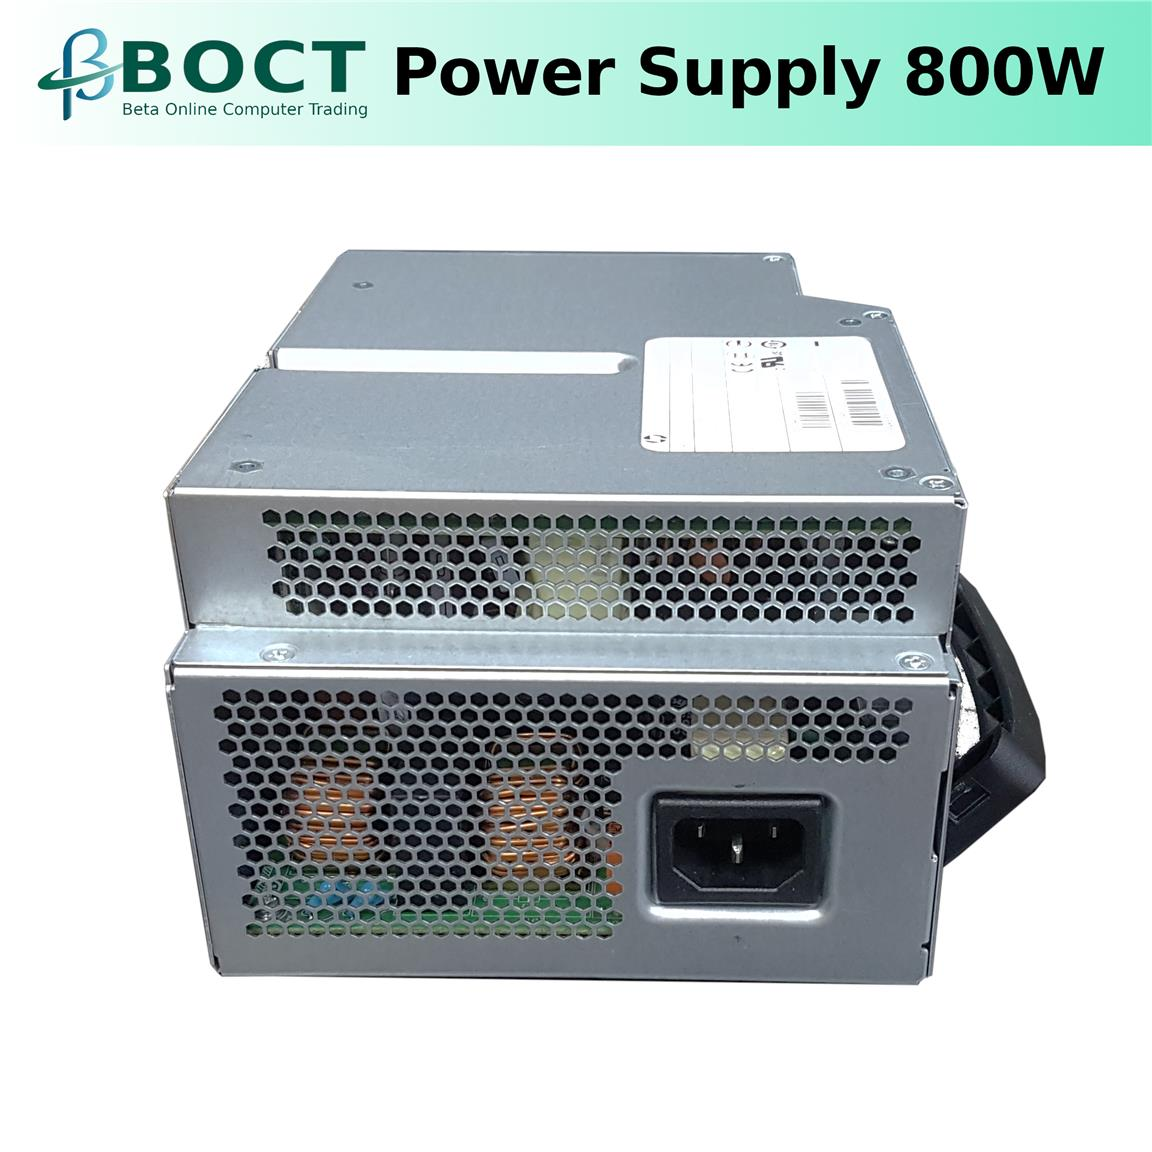 HP Z620 Workstation Power Supply | 800W | S10-800P1A | 623194-002: Best  Price in Malaysia